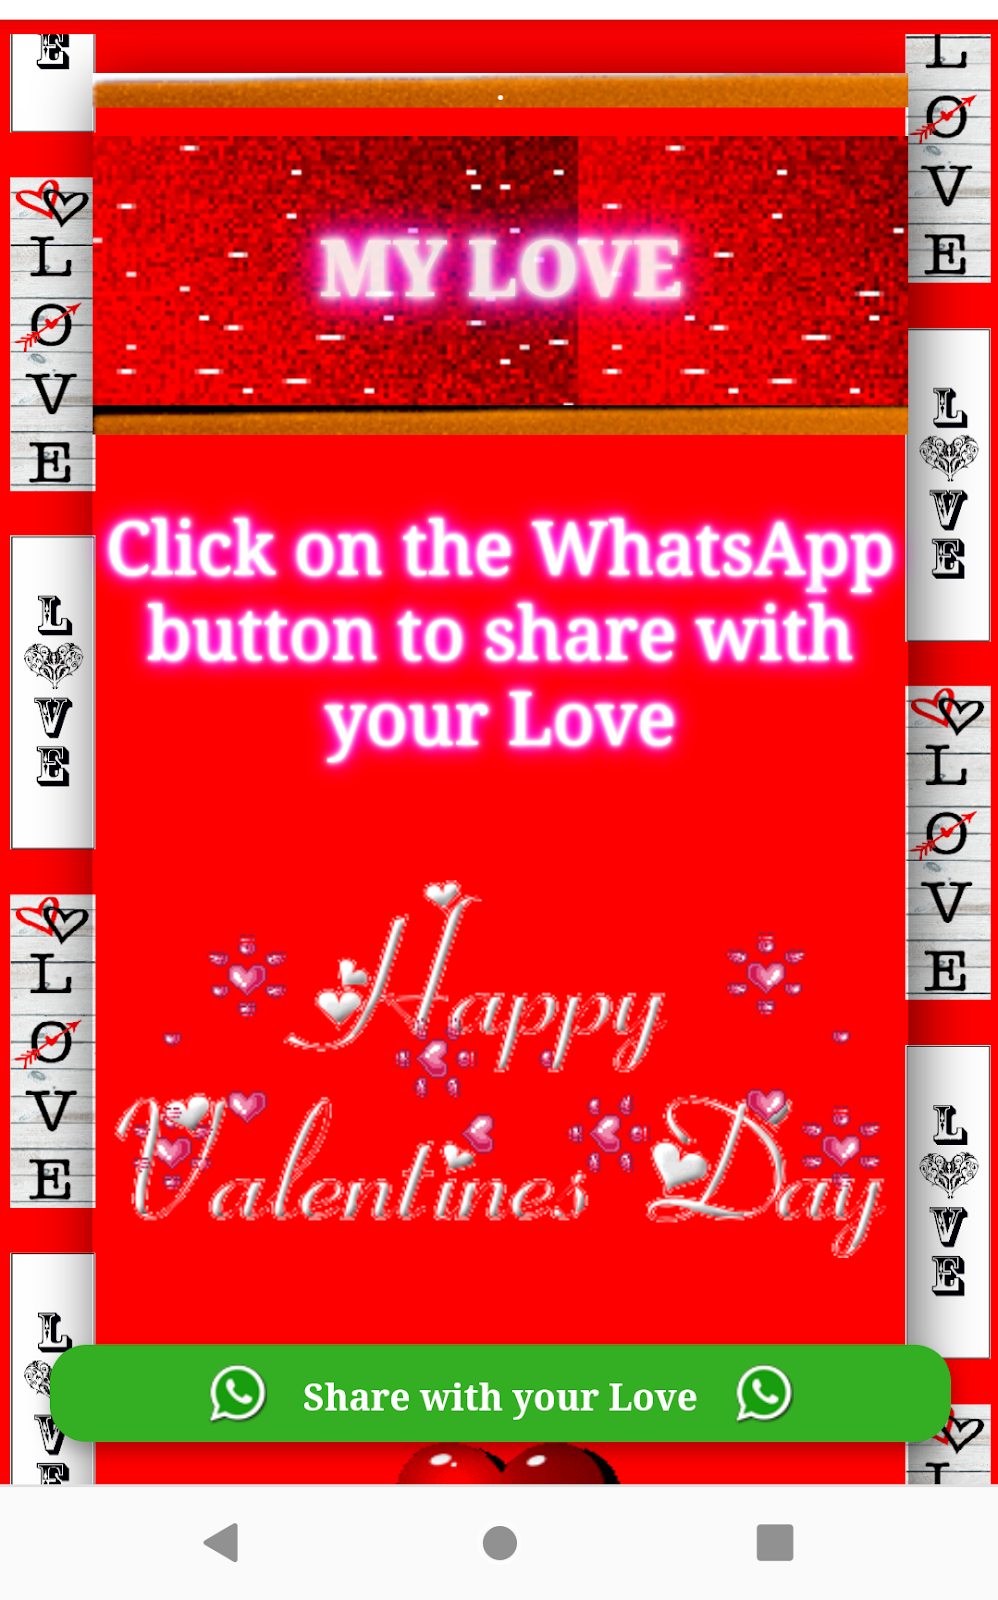 Happy Valentines Day Image For Love